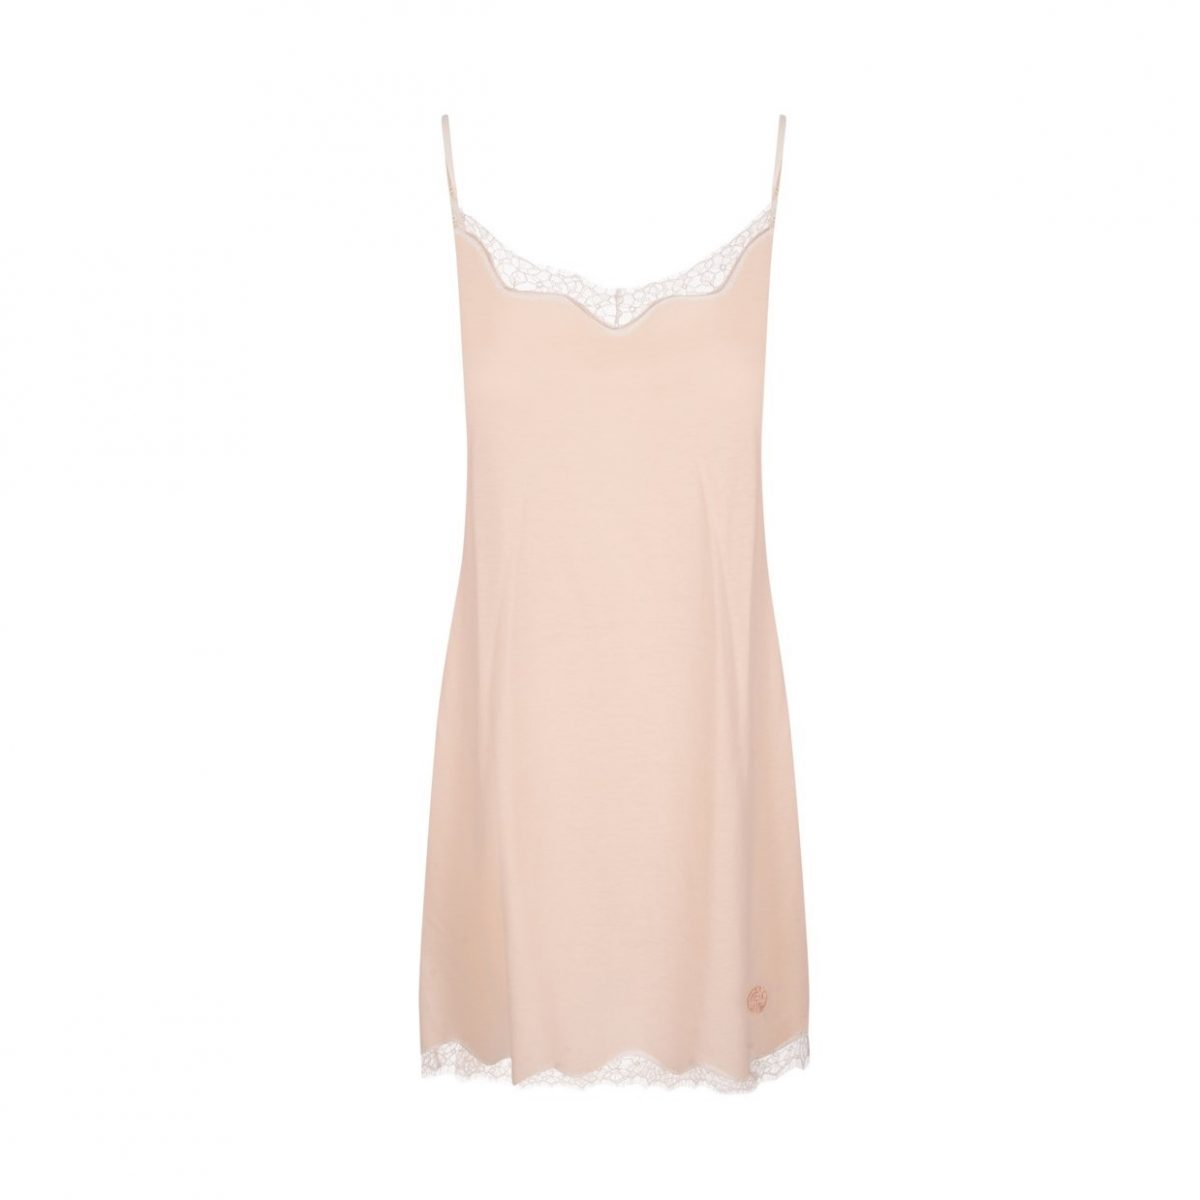 Feraud nightdress1 (2)